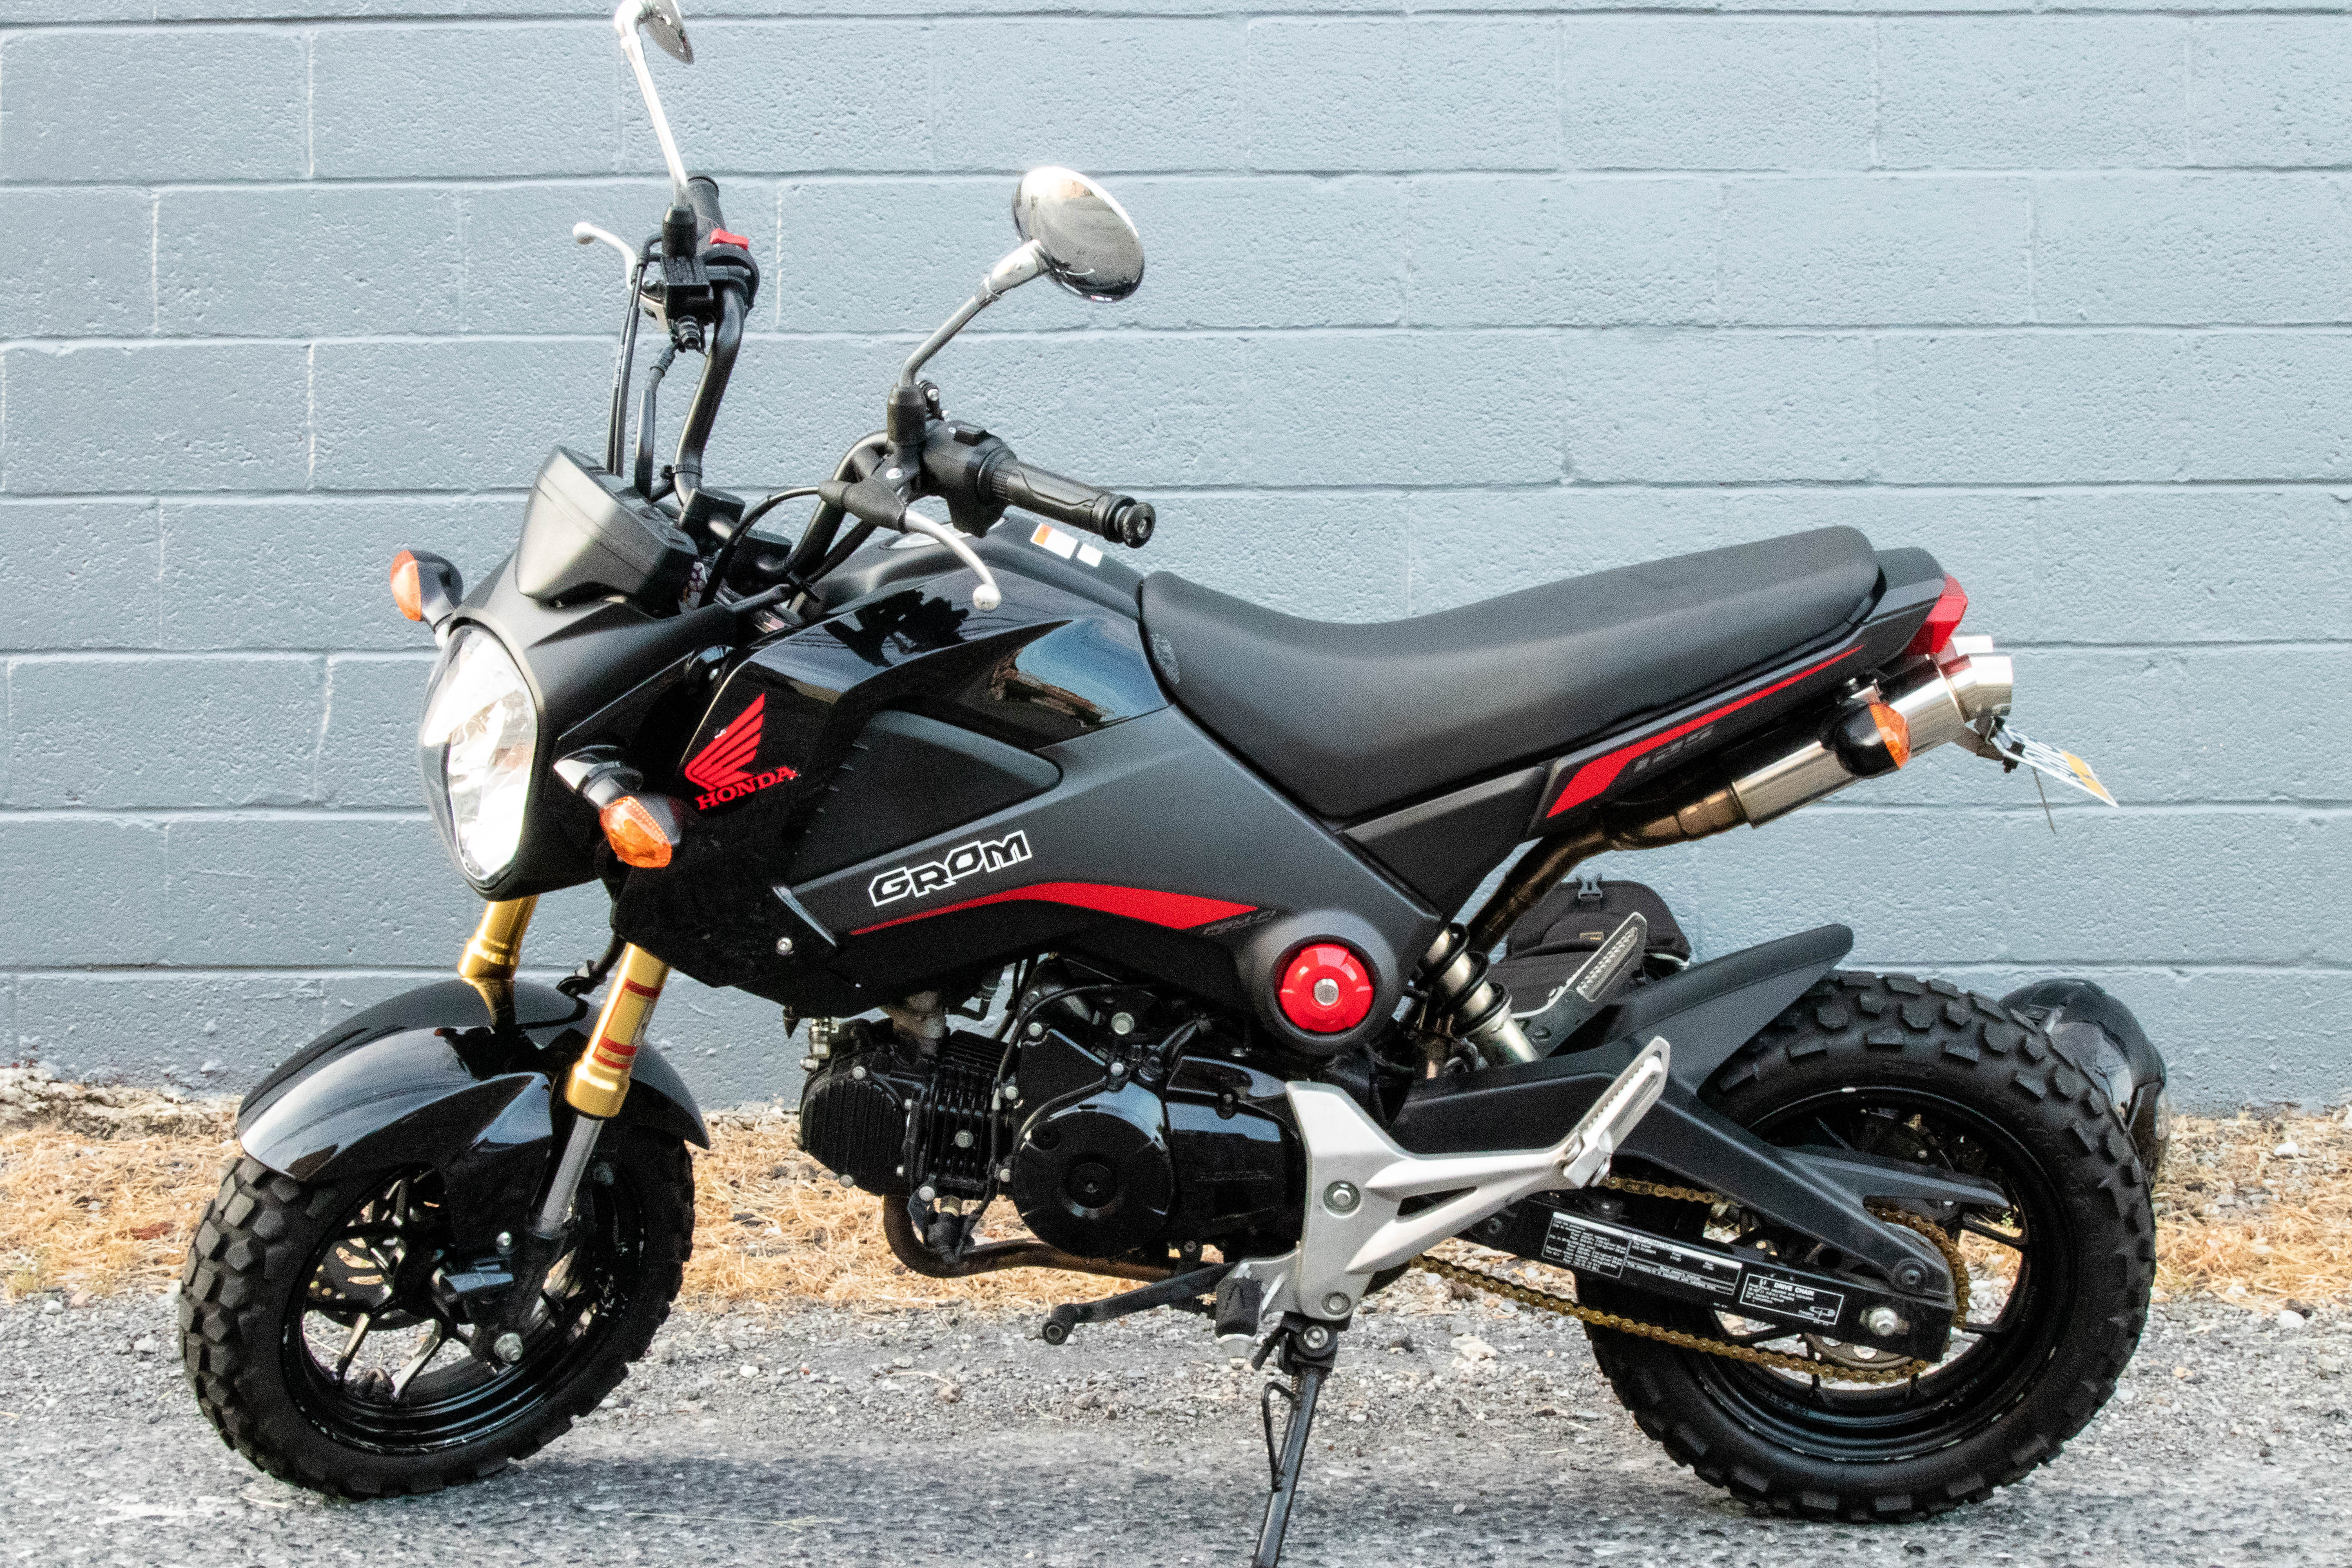 A new rider's perspective: Used Honda Grom versus new CSC